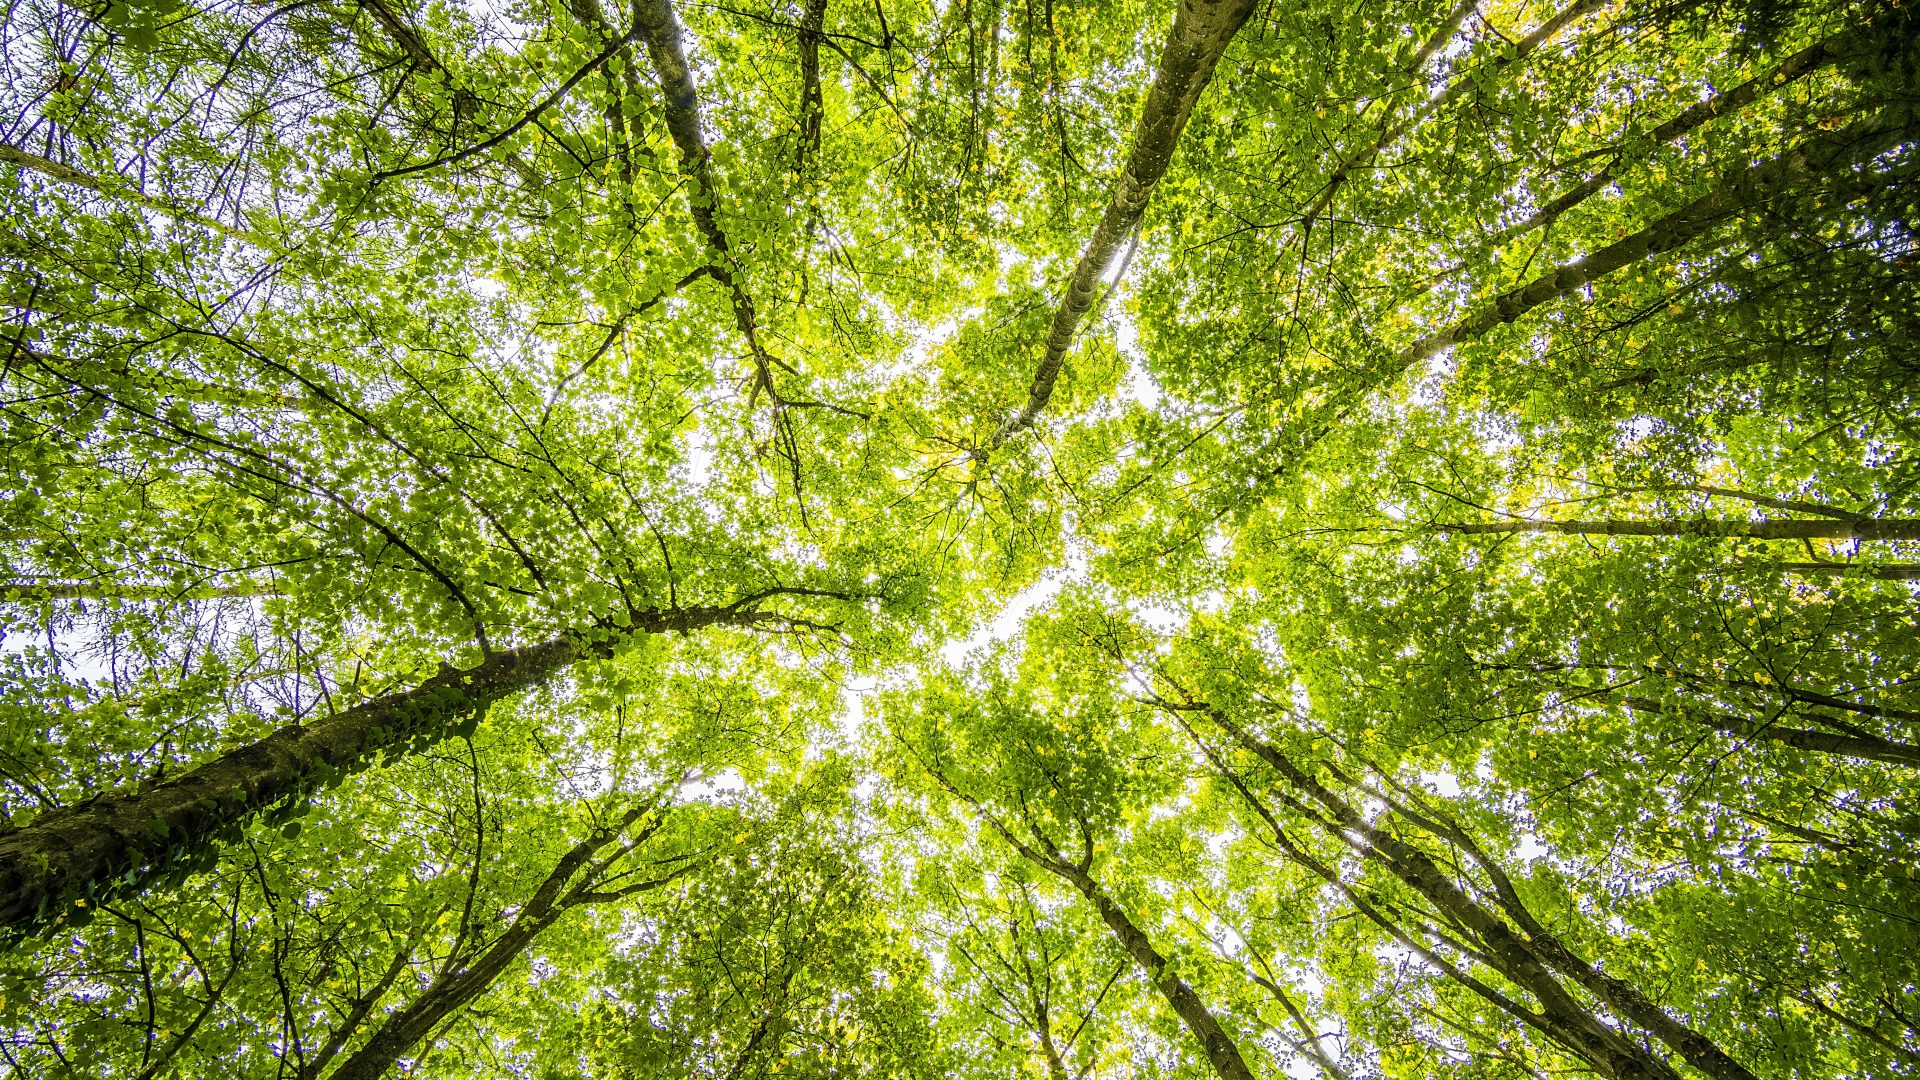 Photo of green trees from ground looking up. Represent mental health during covid-19